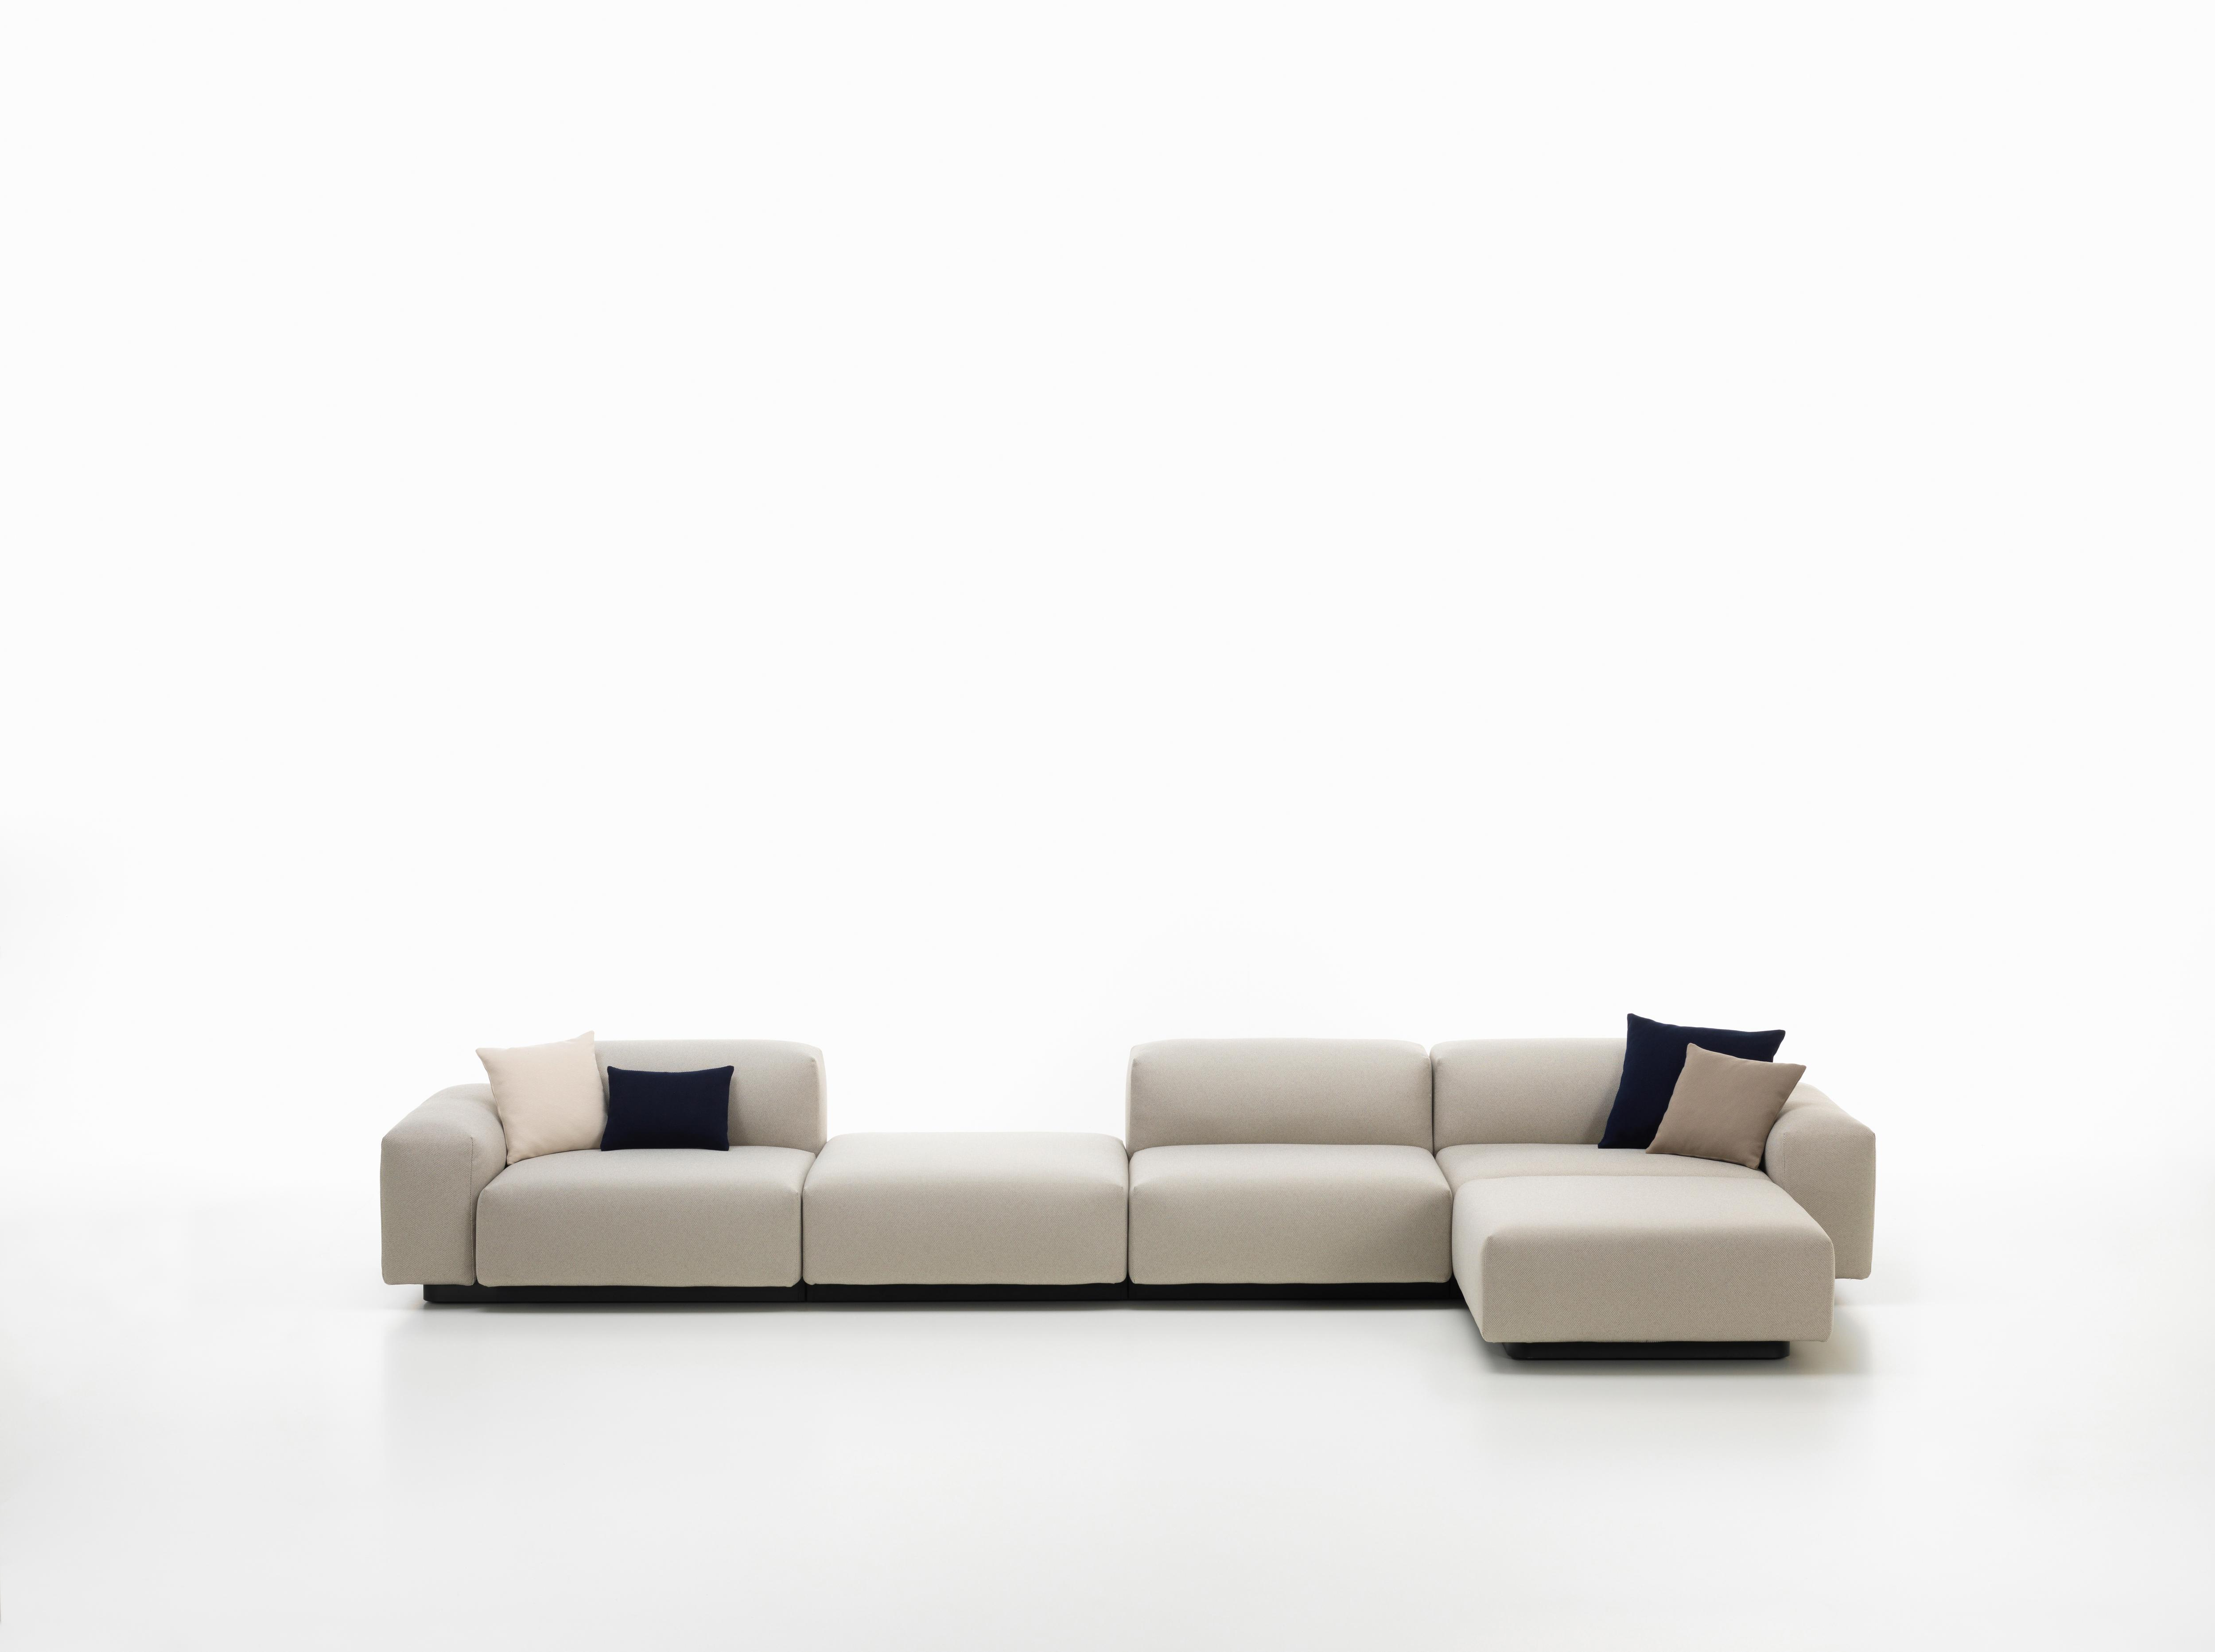 Widely Used Pearl Chaise Lounges For Vitra Soft Modular 4 Seat Sofa With Chaise Lounge & Platform In Pearl Olimpo (View 25 of 25)